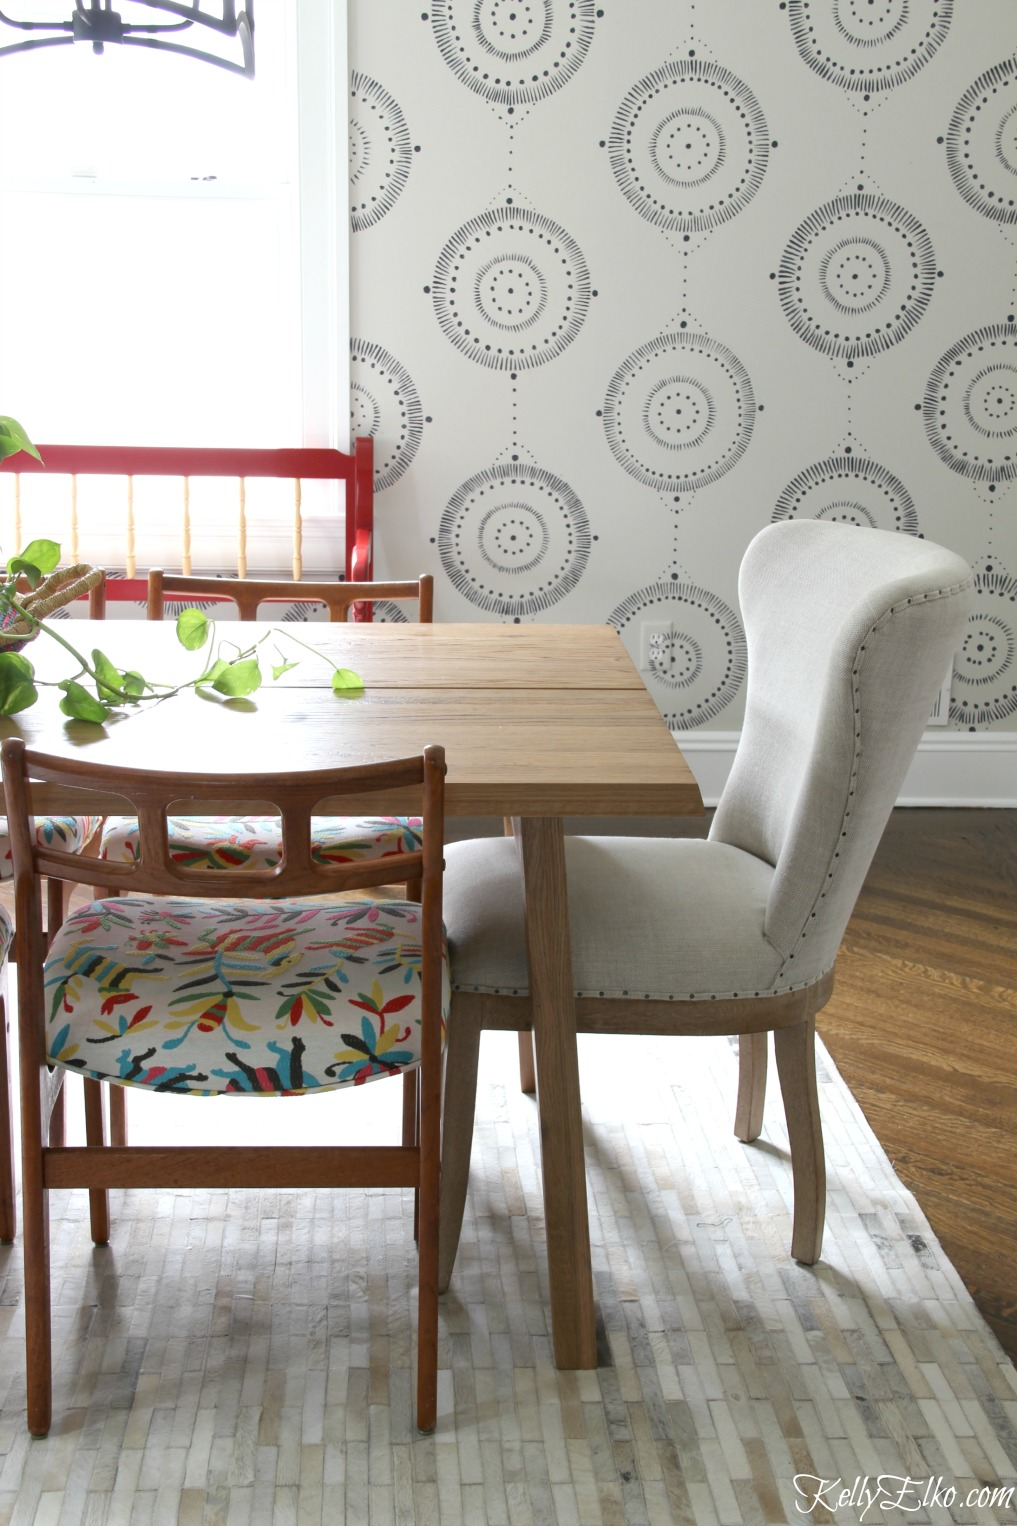 This eclectic dining room mixes Danish modern chairs with colorful otomi fabric and an Article dining table in solid oak kellyelko.com #diningroom #diningroomdecor #diningroomfurniture #midcenturymodern #midcentury #bohostyle #otomi #vintagestyle #interiordecor